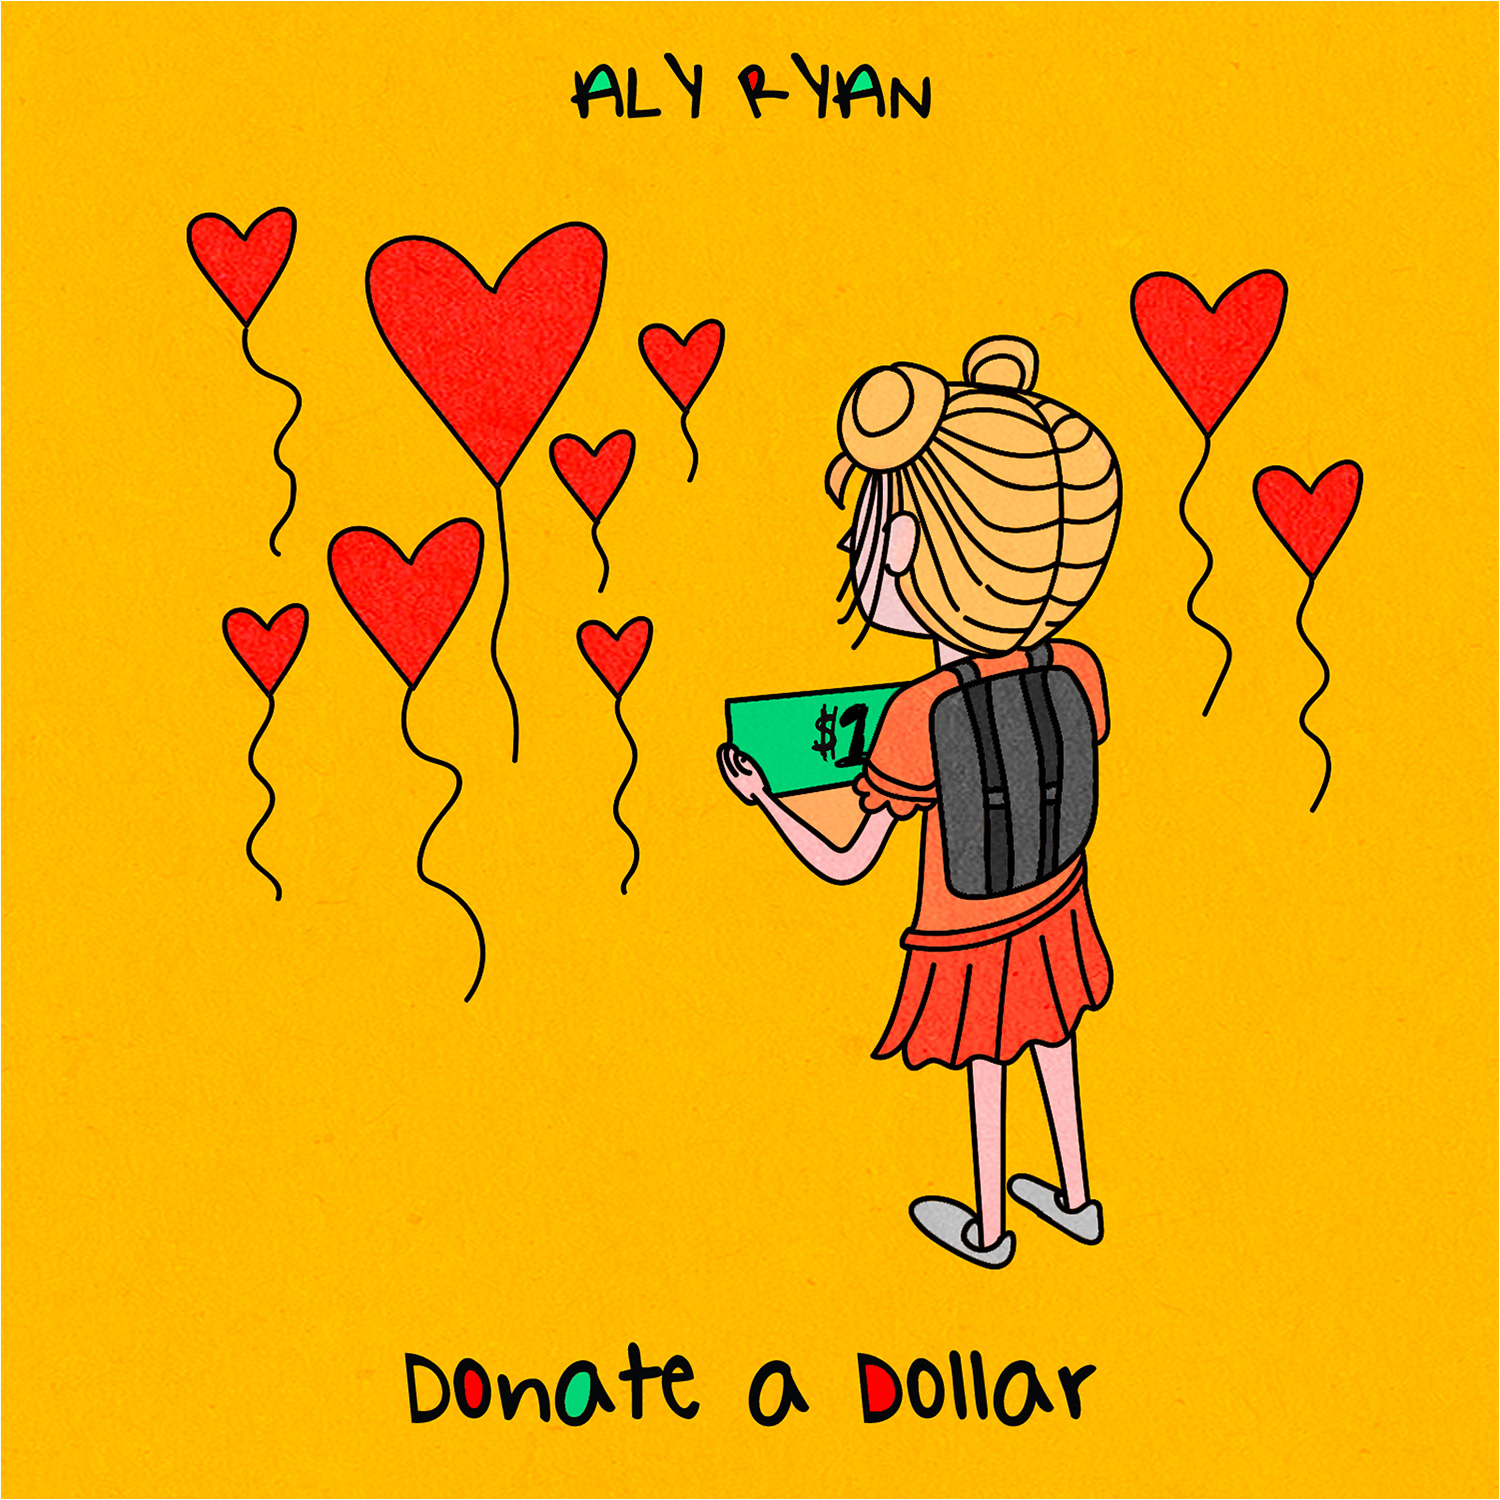 Cover-Art-Aly-Ryan-Donate-a-Dollar.jpg